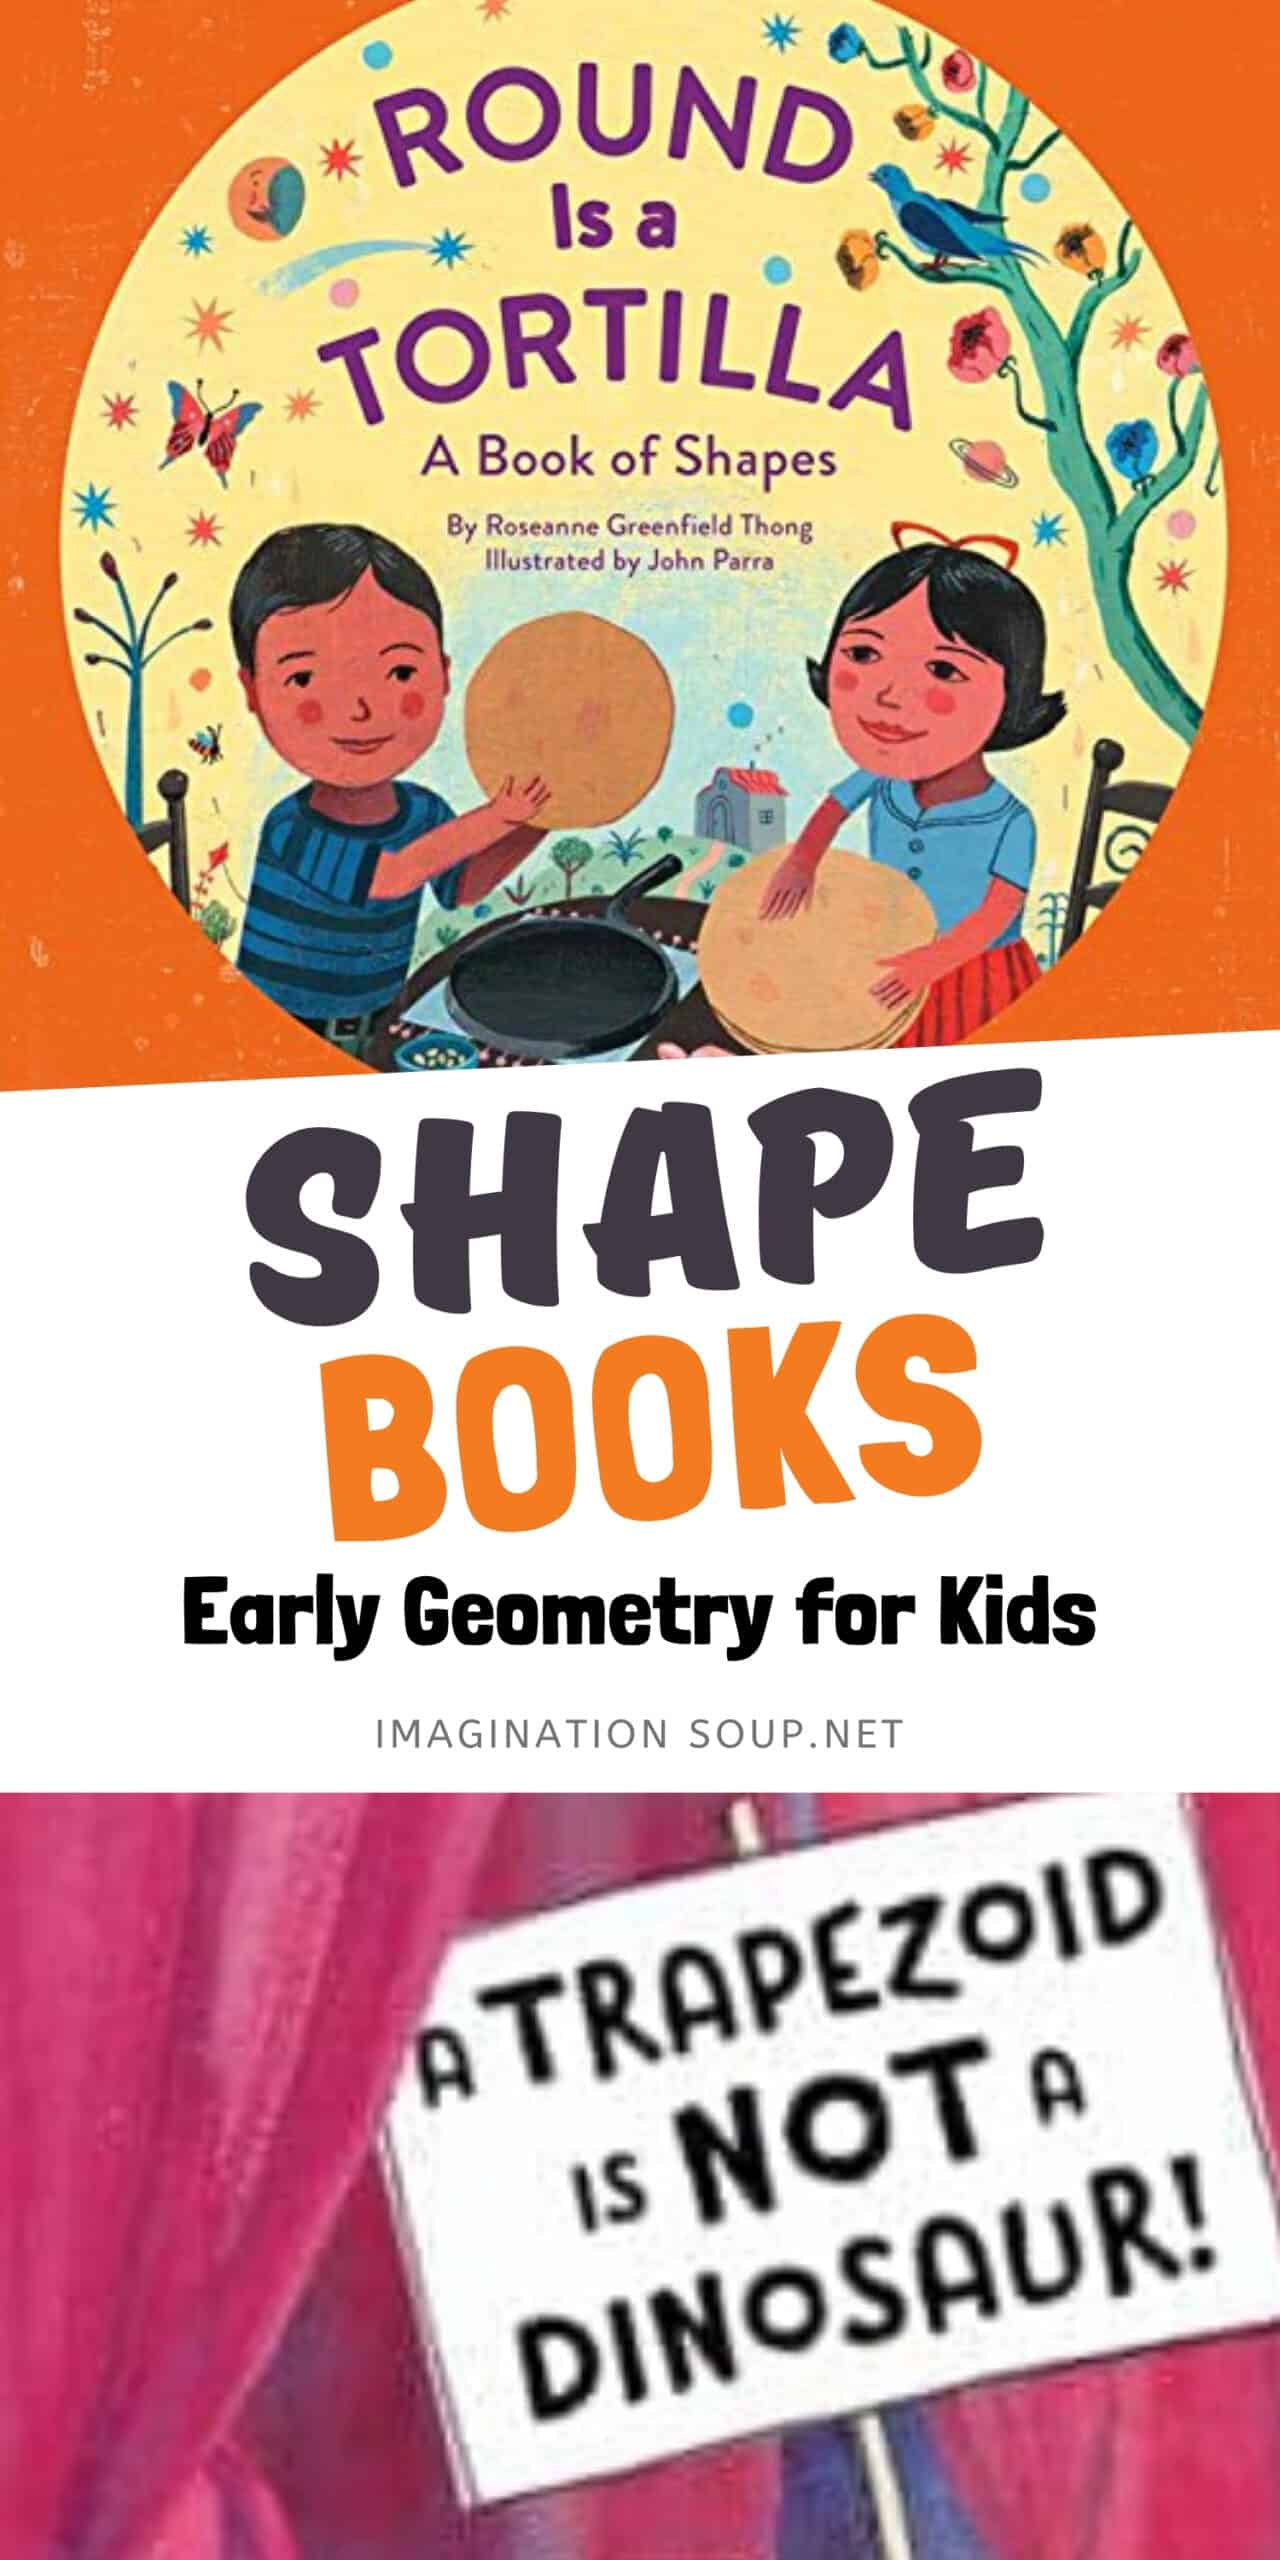 THE BEST BOOKS ABOUT SHAPES FOR KIDS